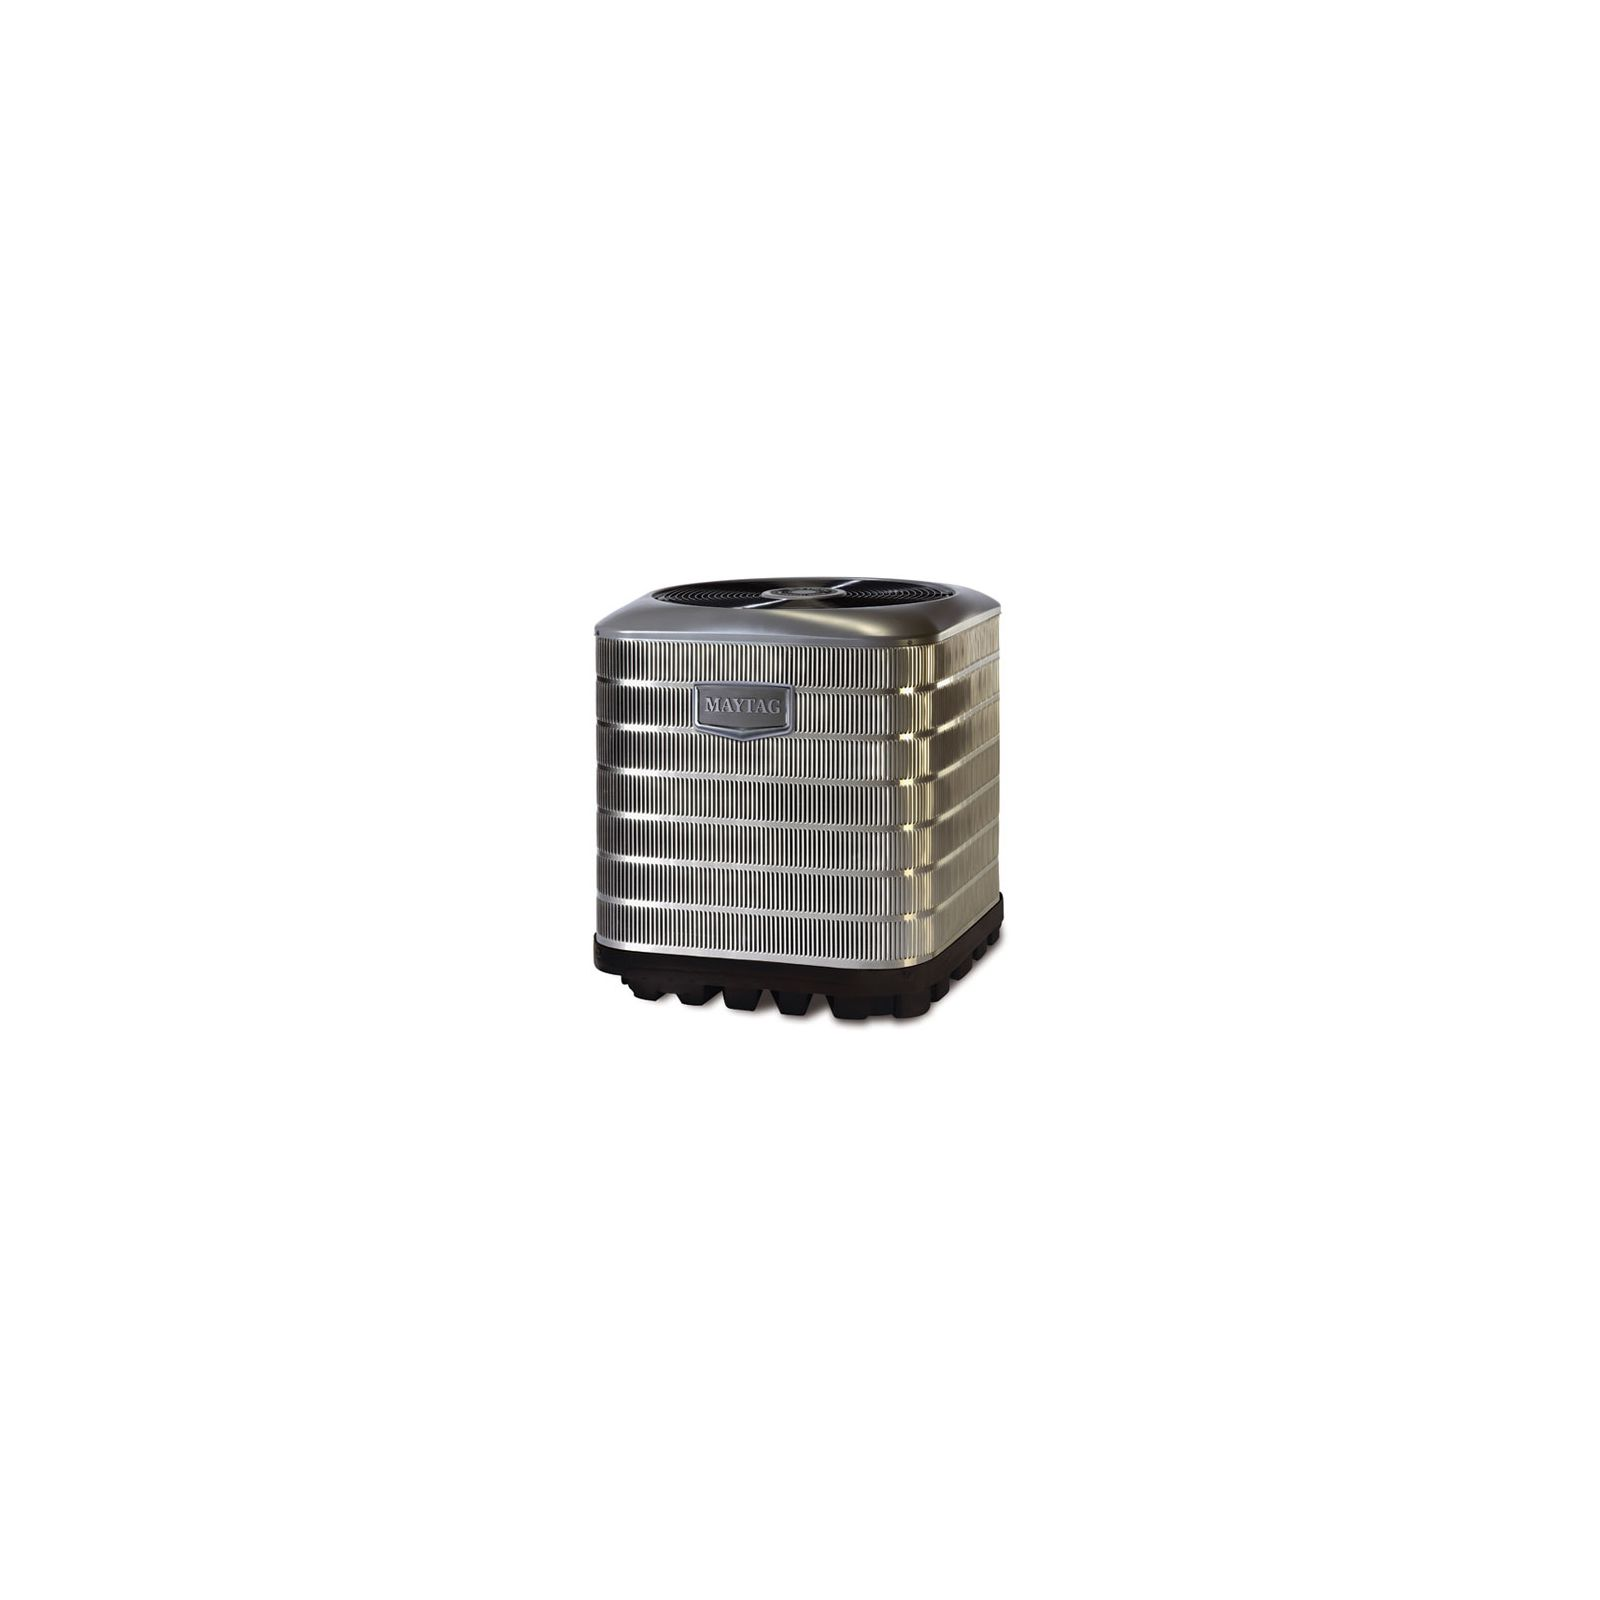 Maytag 921222P - PSH4BG048K - 4 Ton 19 SEER M1200 iQ Drive Extra High Efficiency Heat Pump, R410A